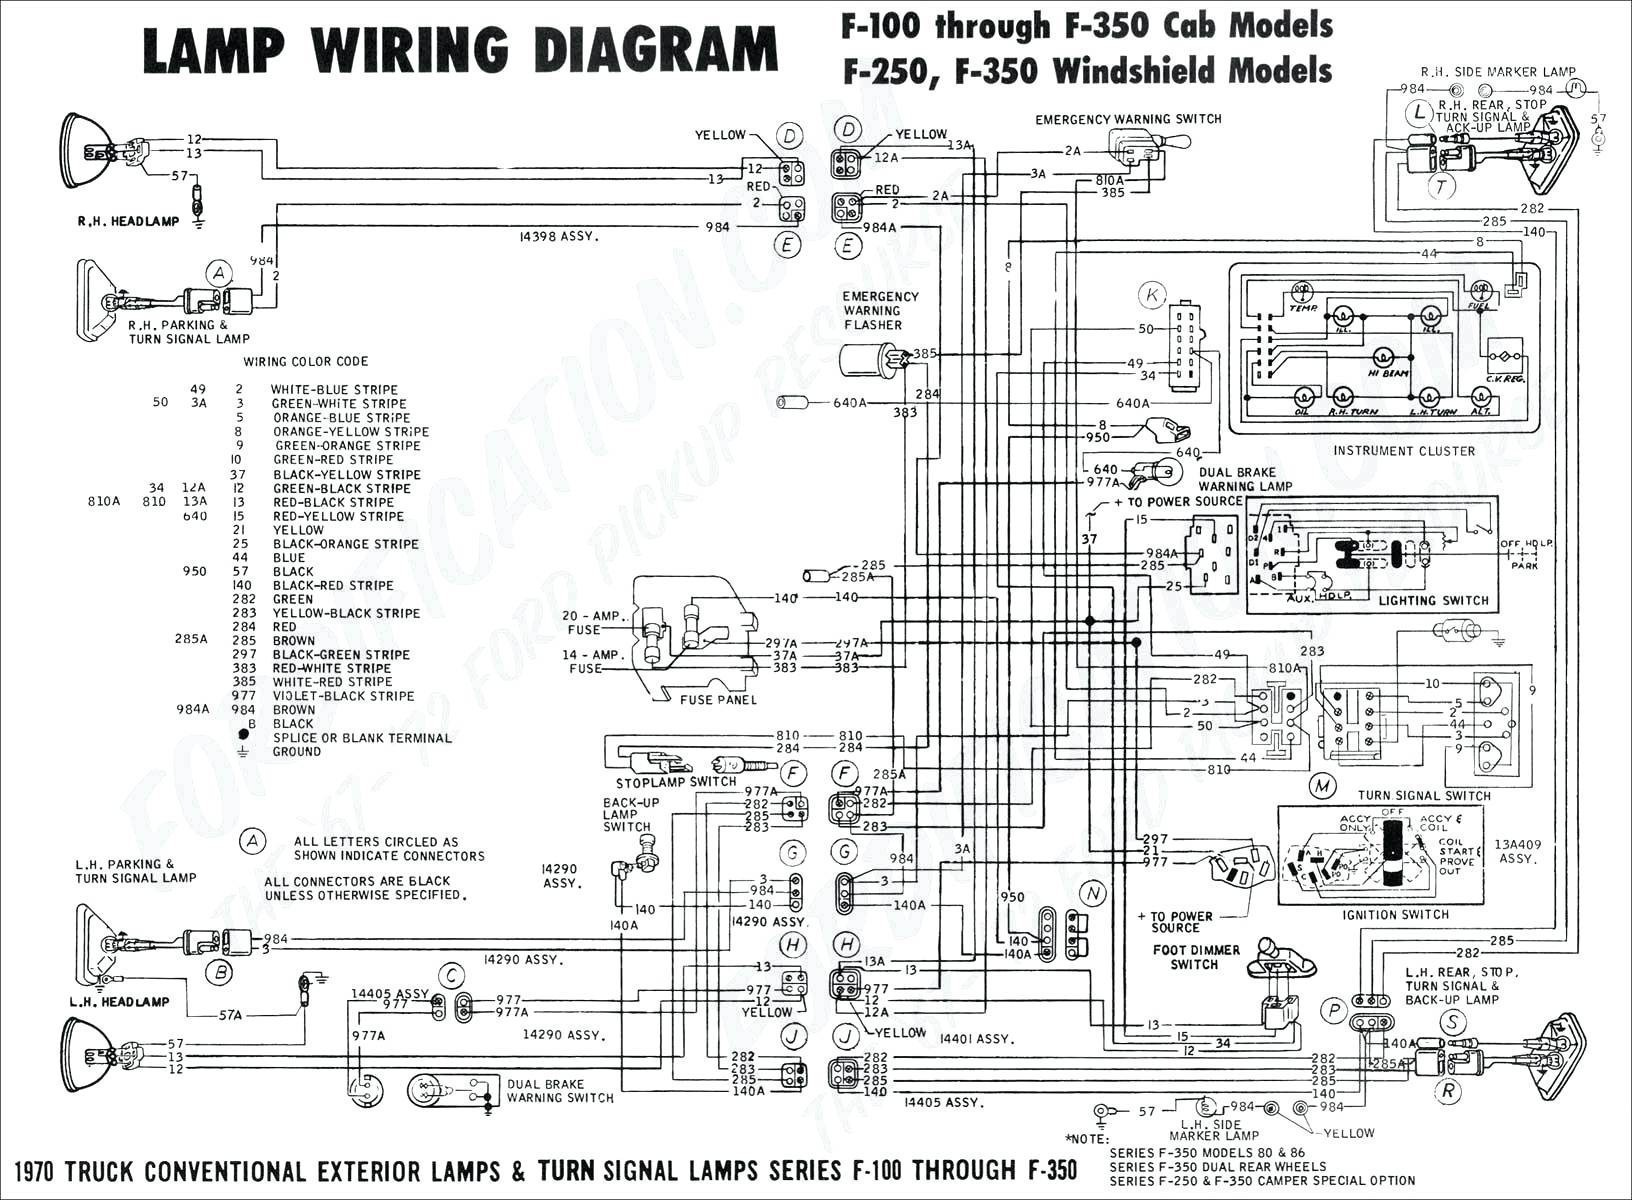 2006 Dodge Charger Fuse Box Diagram Likewise 2013 Dodge Ram Fuse Box